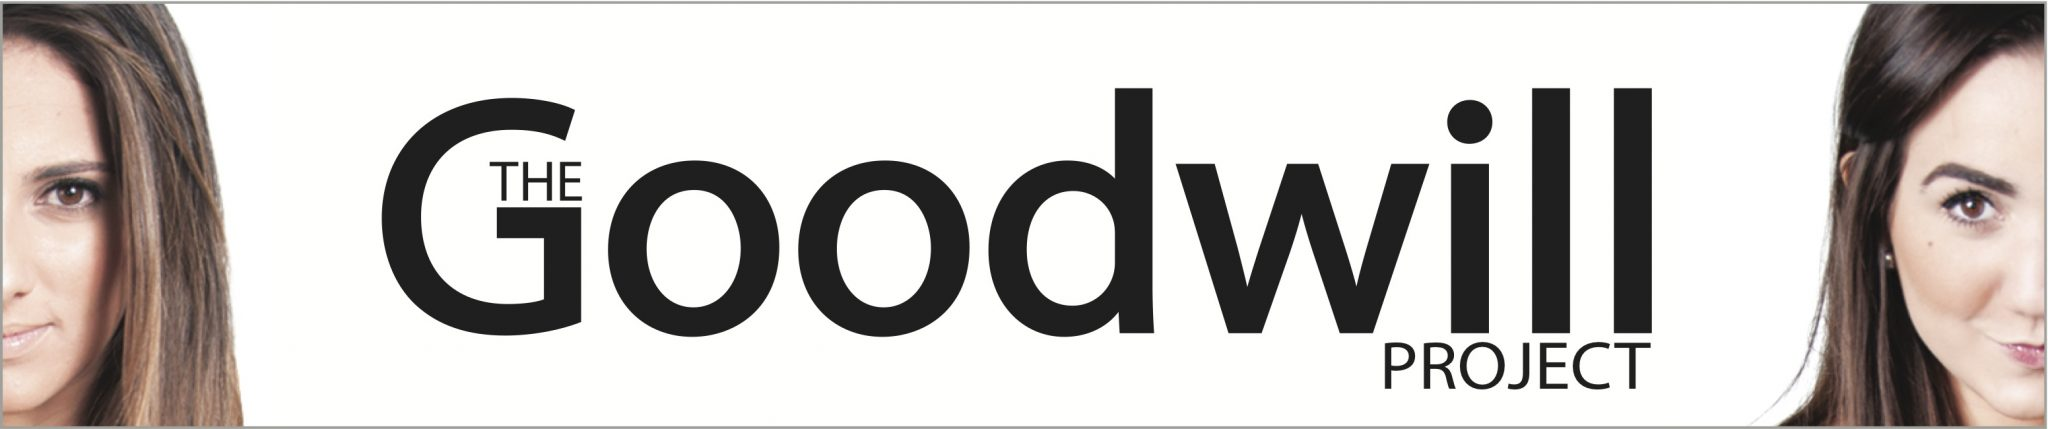 The goodwill project_Feature Friday